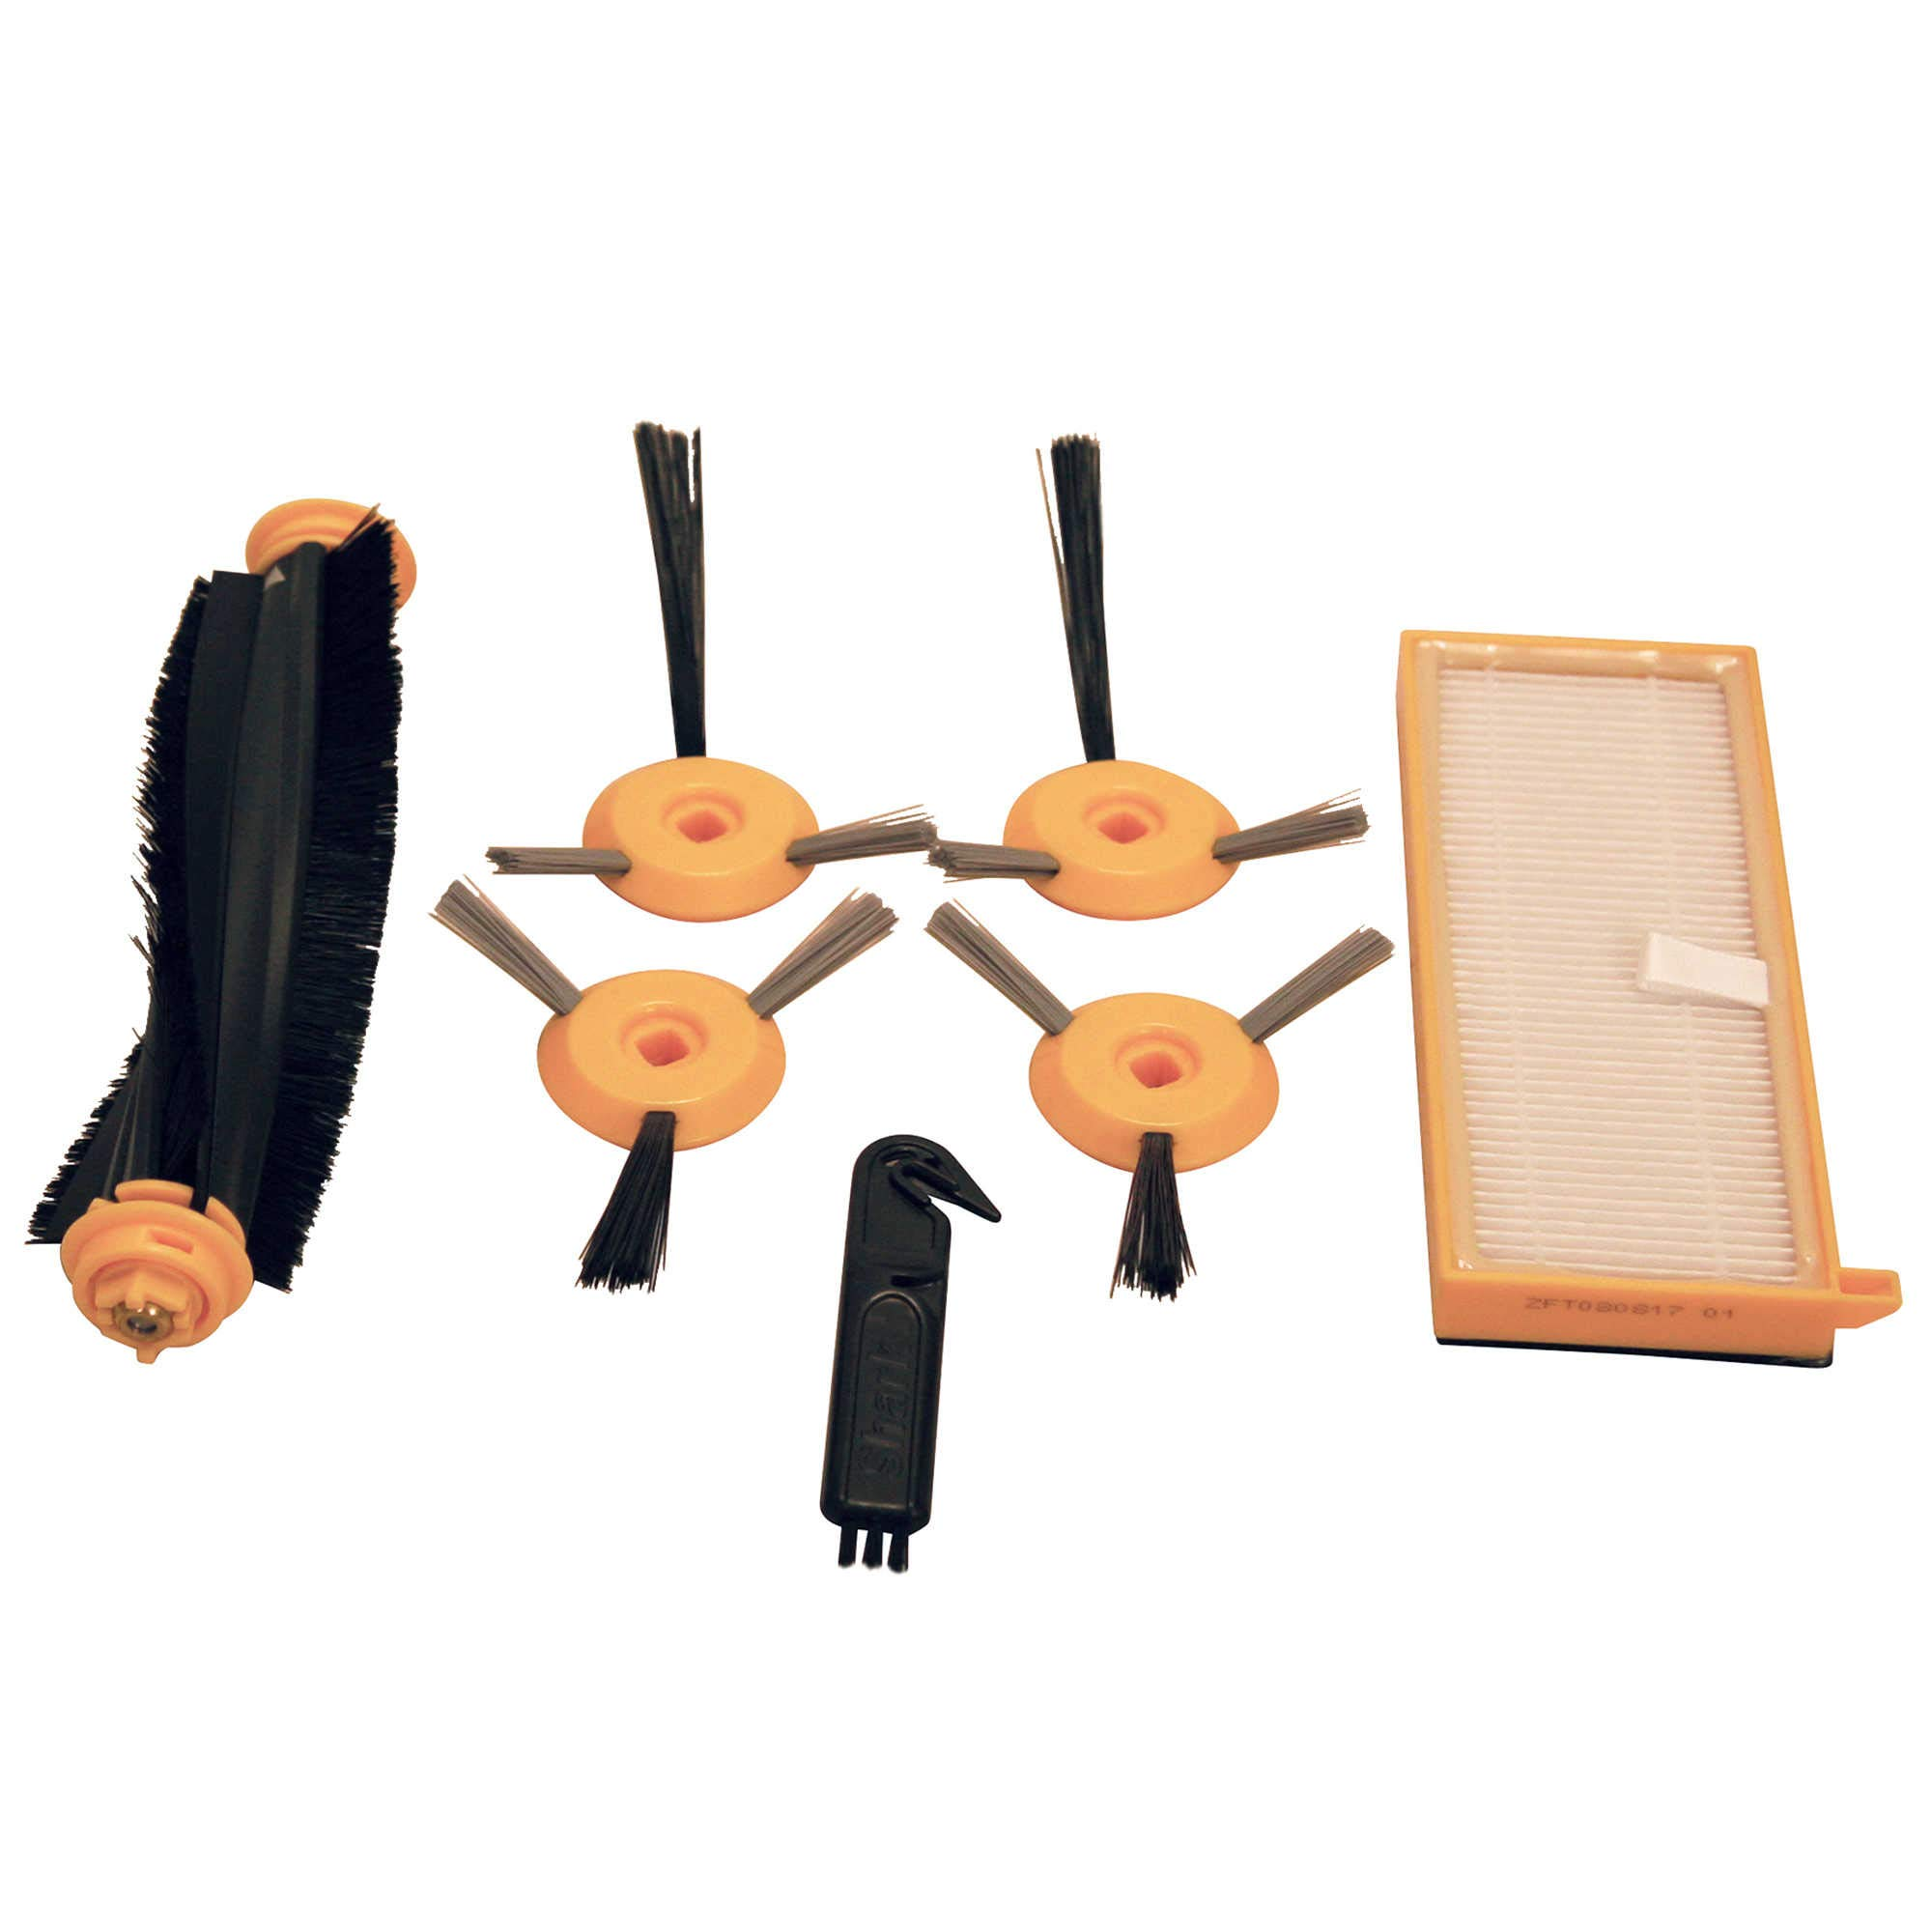 Shark Ion Robot Vacuum Filter and Brushes Replacement Kit for Shark Ion Robot Model RV750,Repalce The Worn and Frayed Attachments of Your Vacuum Cleaner to Ensure Maximum Cleaning Efficiency